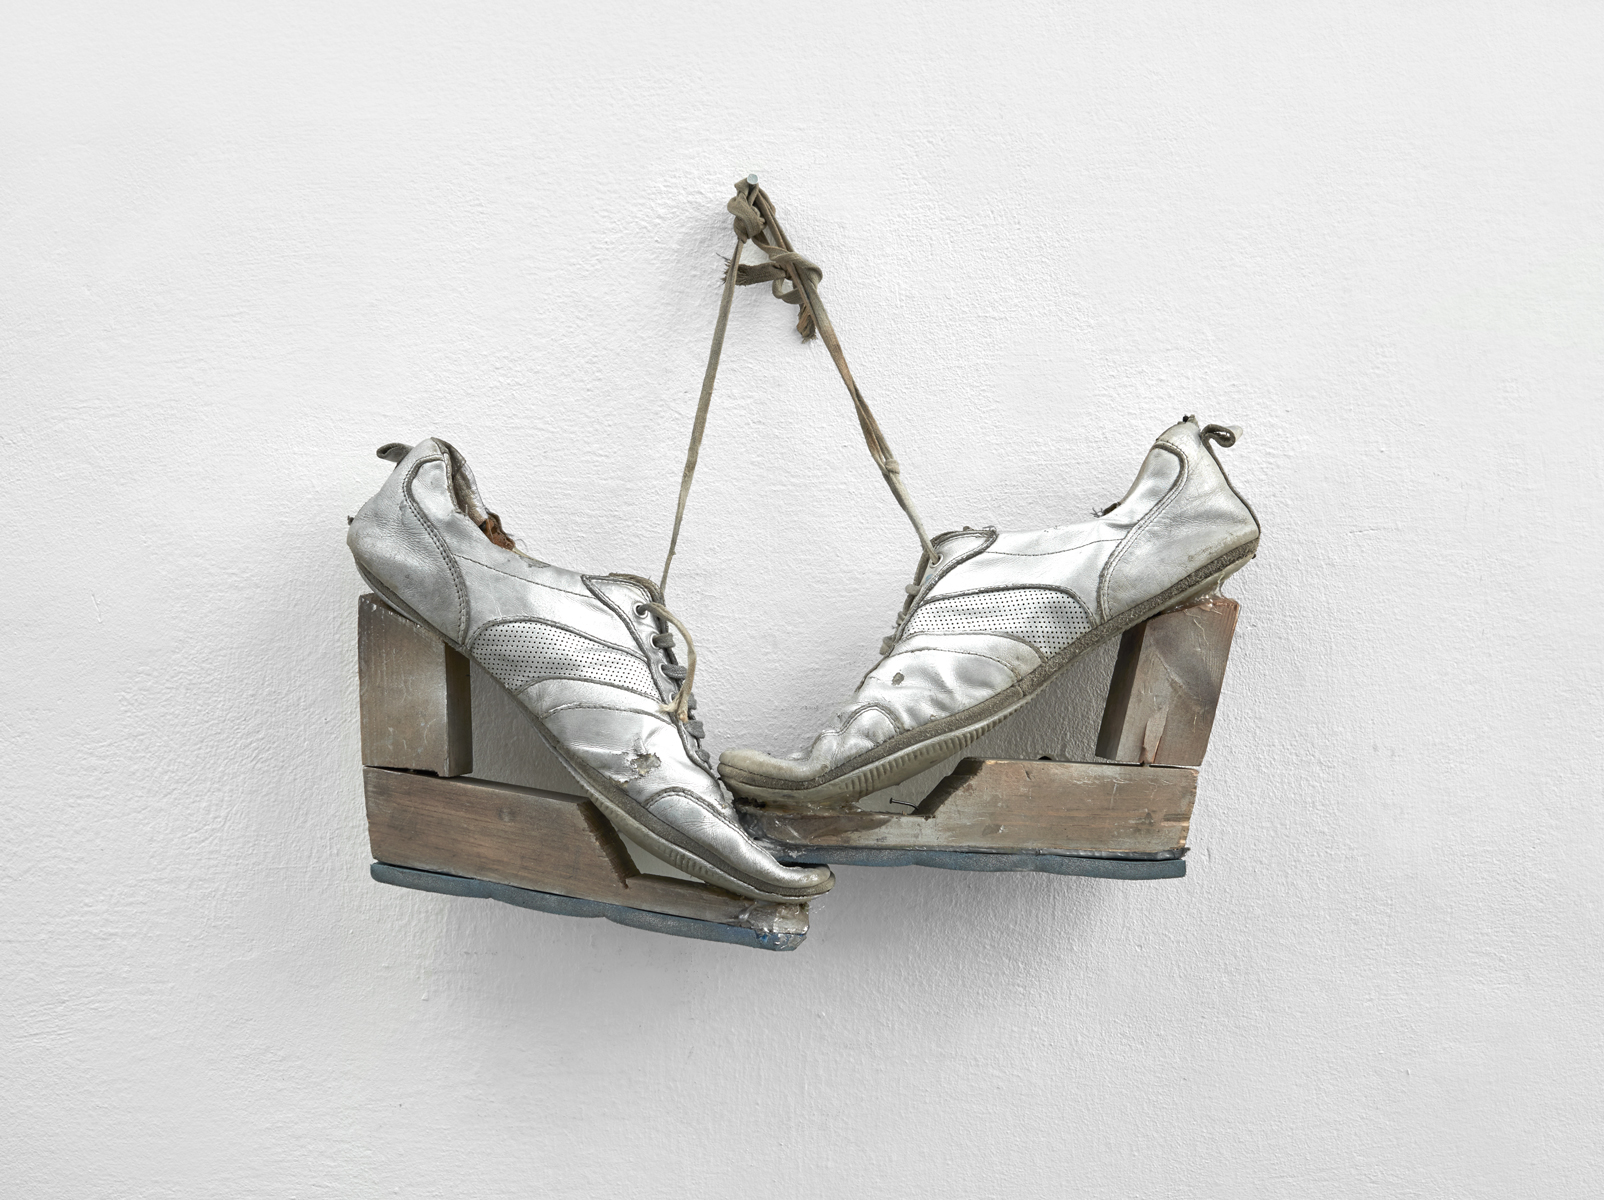 ACTUS PURUS / Urgent need to be on heels / 2016 / 52 x 41 x 8 cm / trainers, wood, pouliretan foam